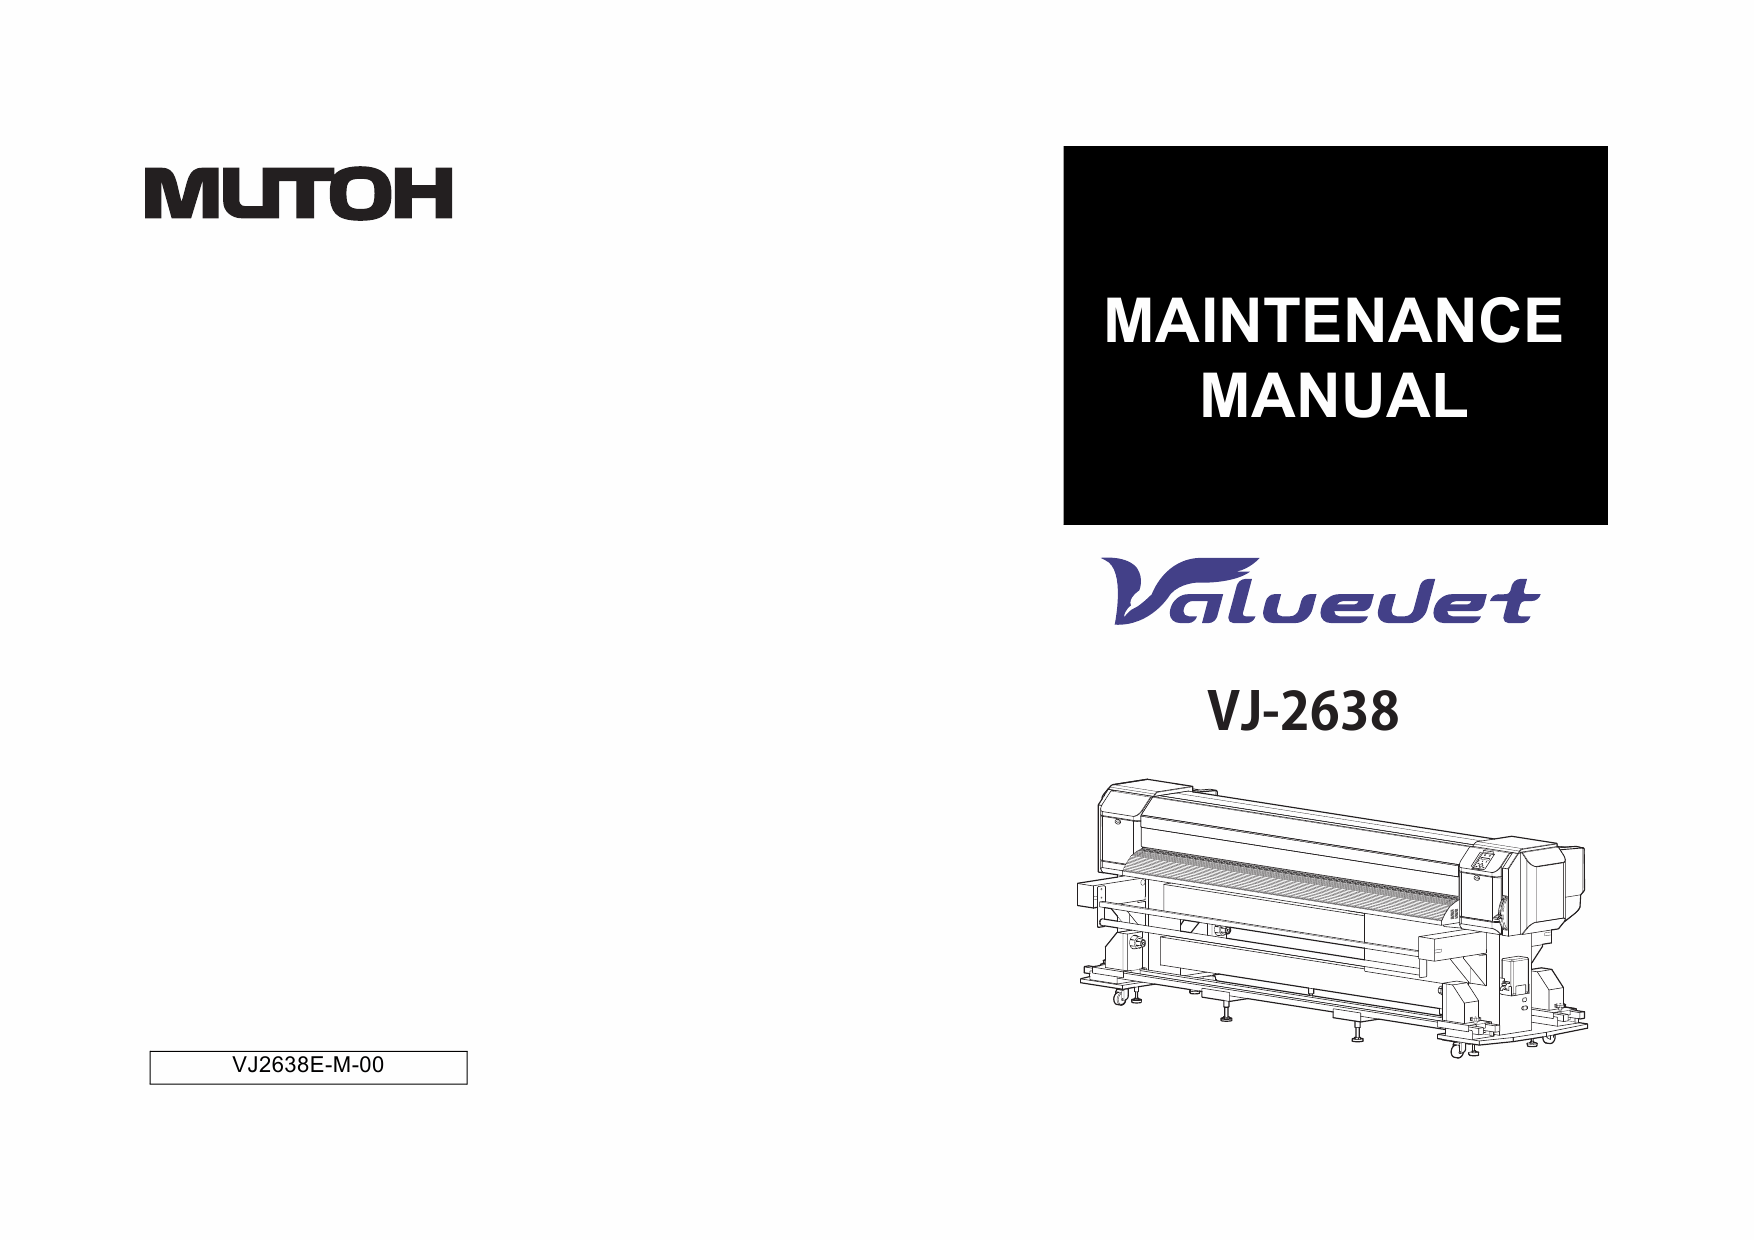 MUTOH ValueJet VJ 2638 MAINTENANCE Service and Parts Manual-1